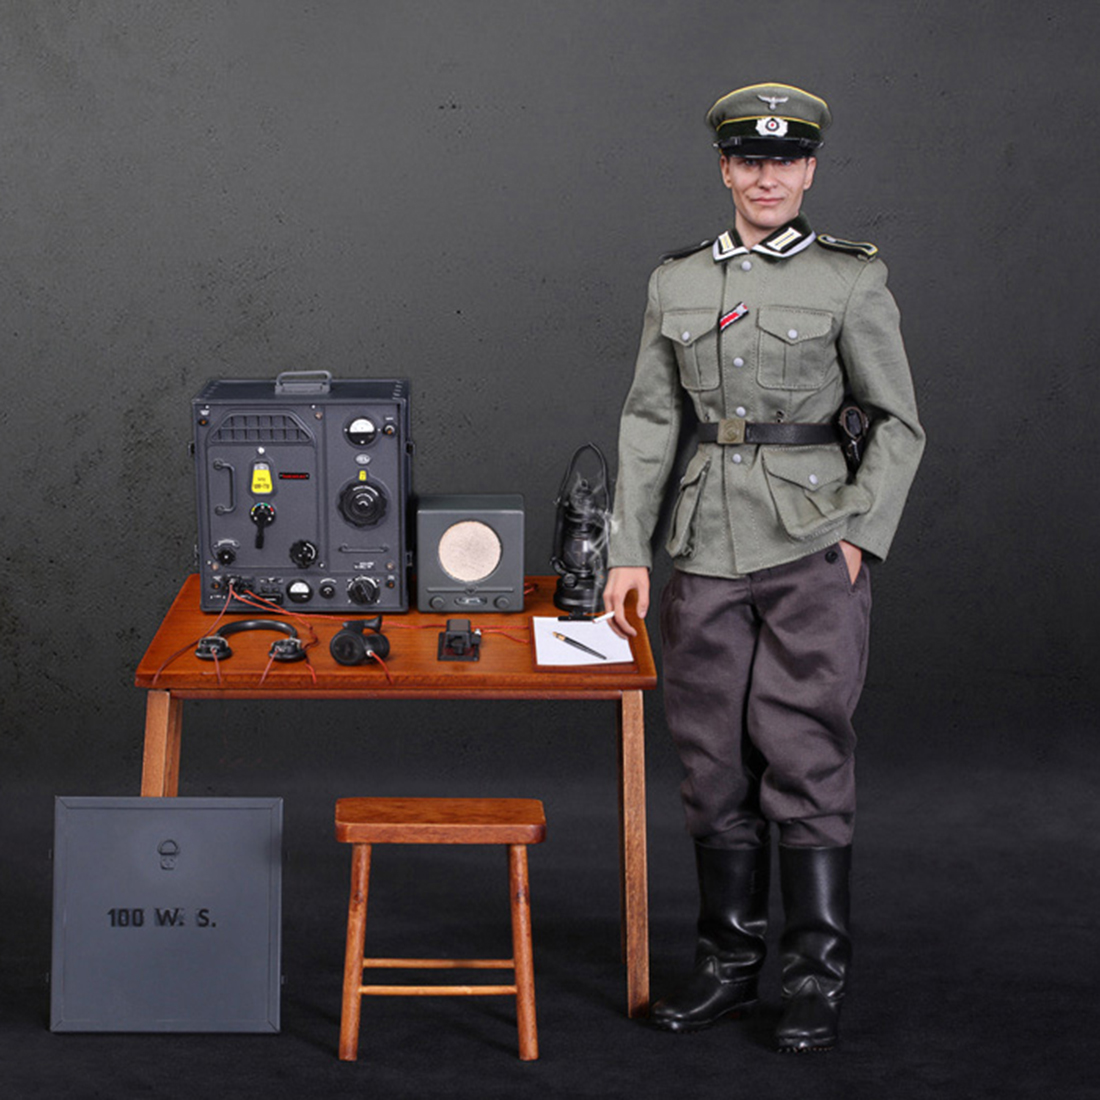 Hot Sale 30cm 1/6 Soldier Model Suit Realistic Headsculpt DIY Handmade DID German Communications Center Radio Soldier CorporalHot Sale 30cm 1/6 Soldier Model Suit Realistic Headsculpt DIY Handmade DID German Communications Center Radio Soldier Corporal